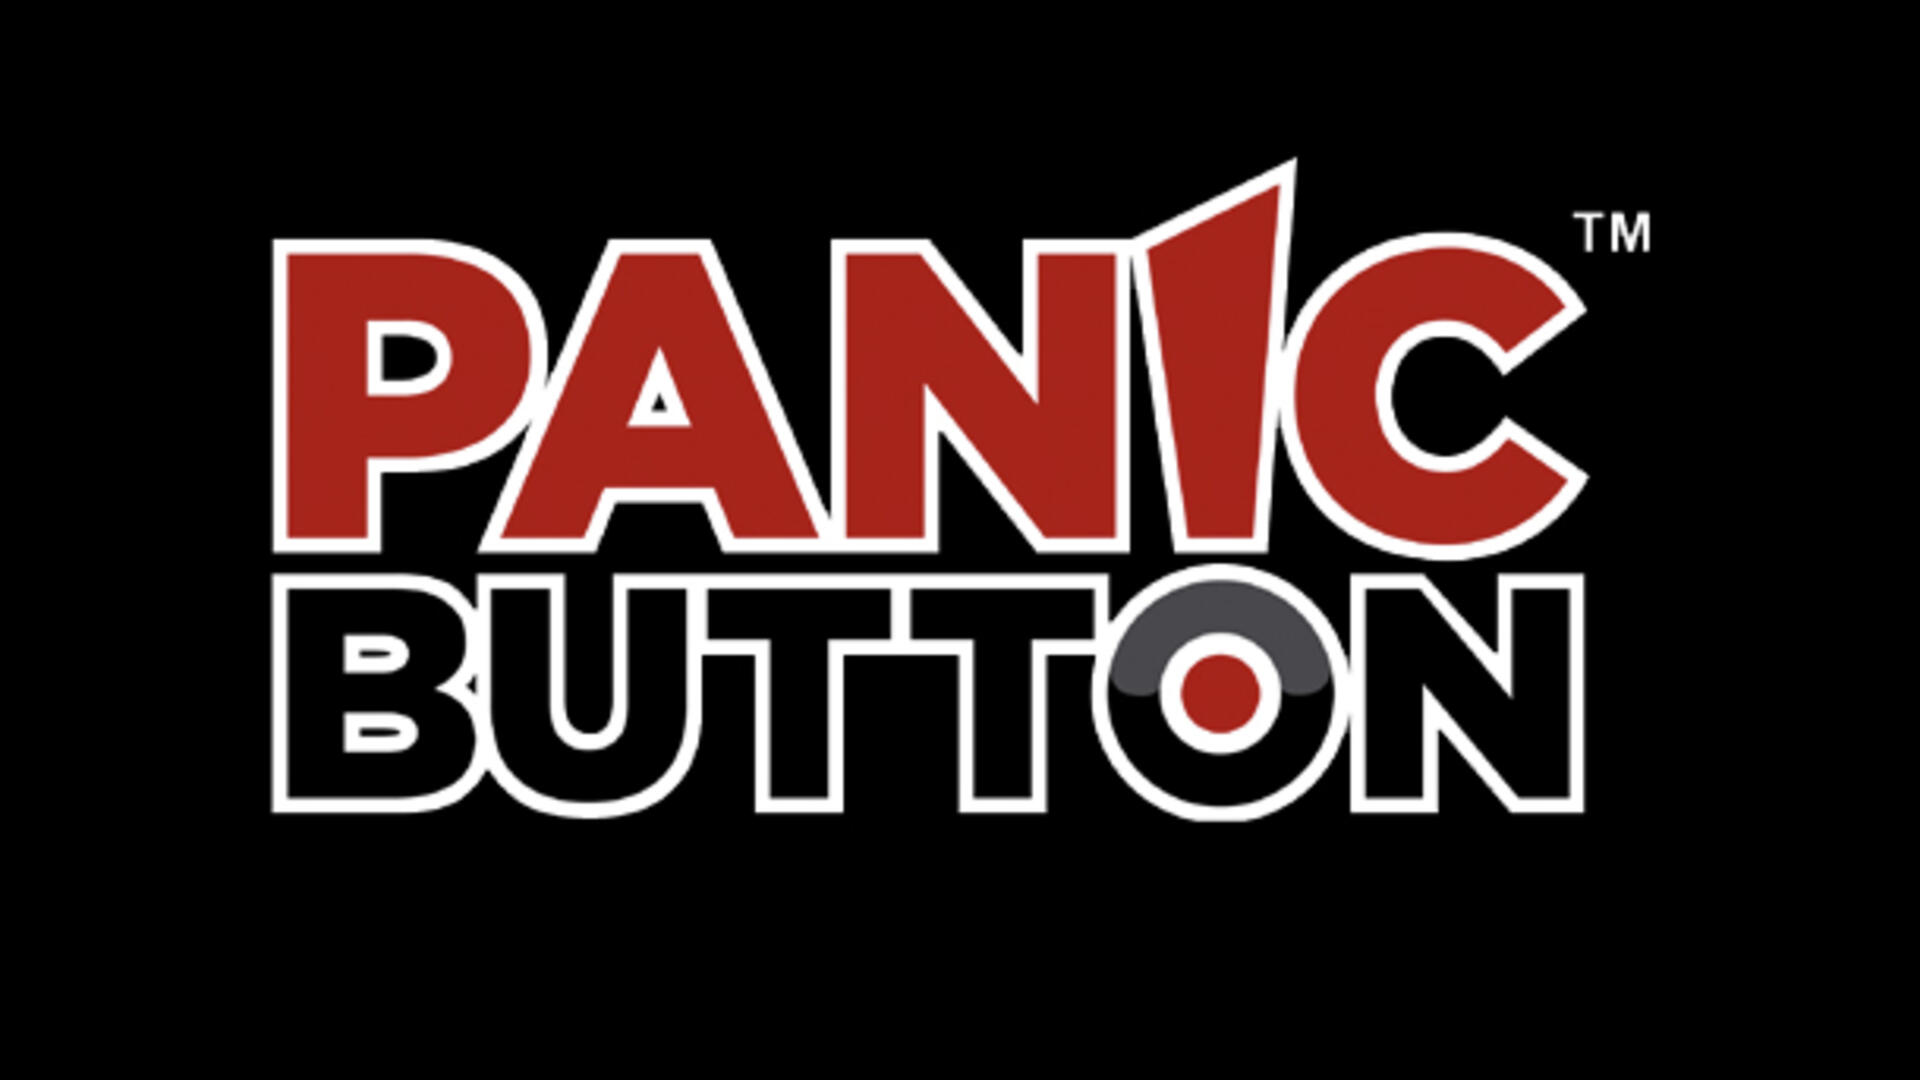 Panic Button is Building Off Its Acclaimed Switch Ports to Make Its Own Original Games